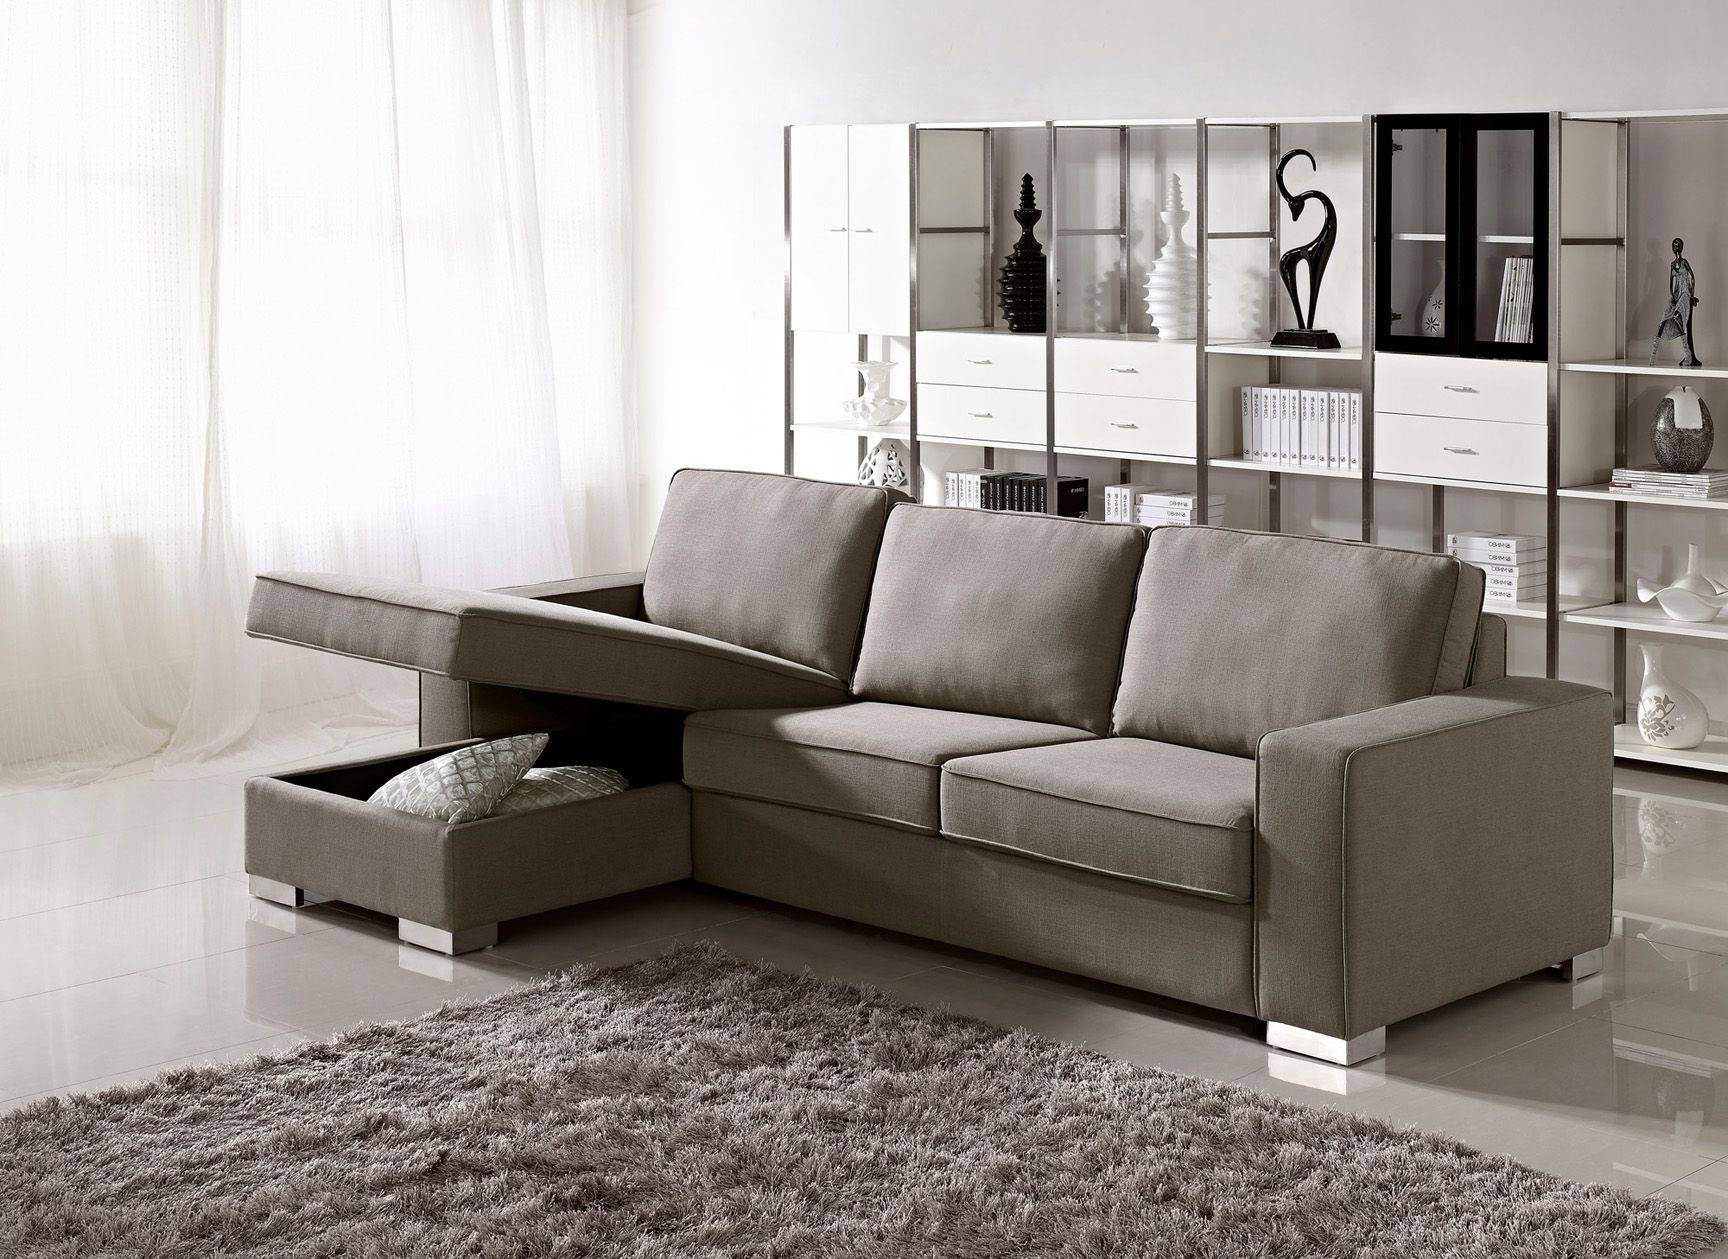 Latest Simple Small Sectional Sofa For Apartment 84 For Your Leather With Regard To Small Sectional Sofas With Chaise Lounge (View 7 of 15)